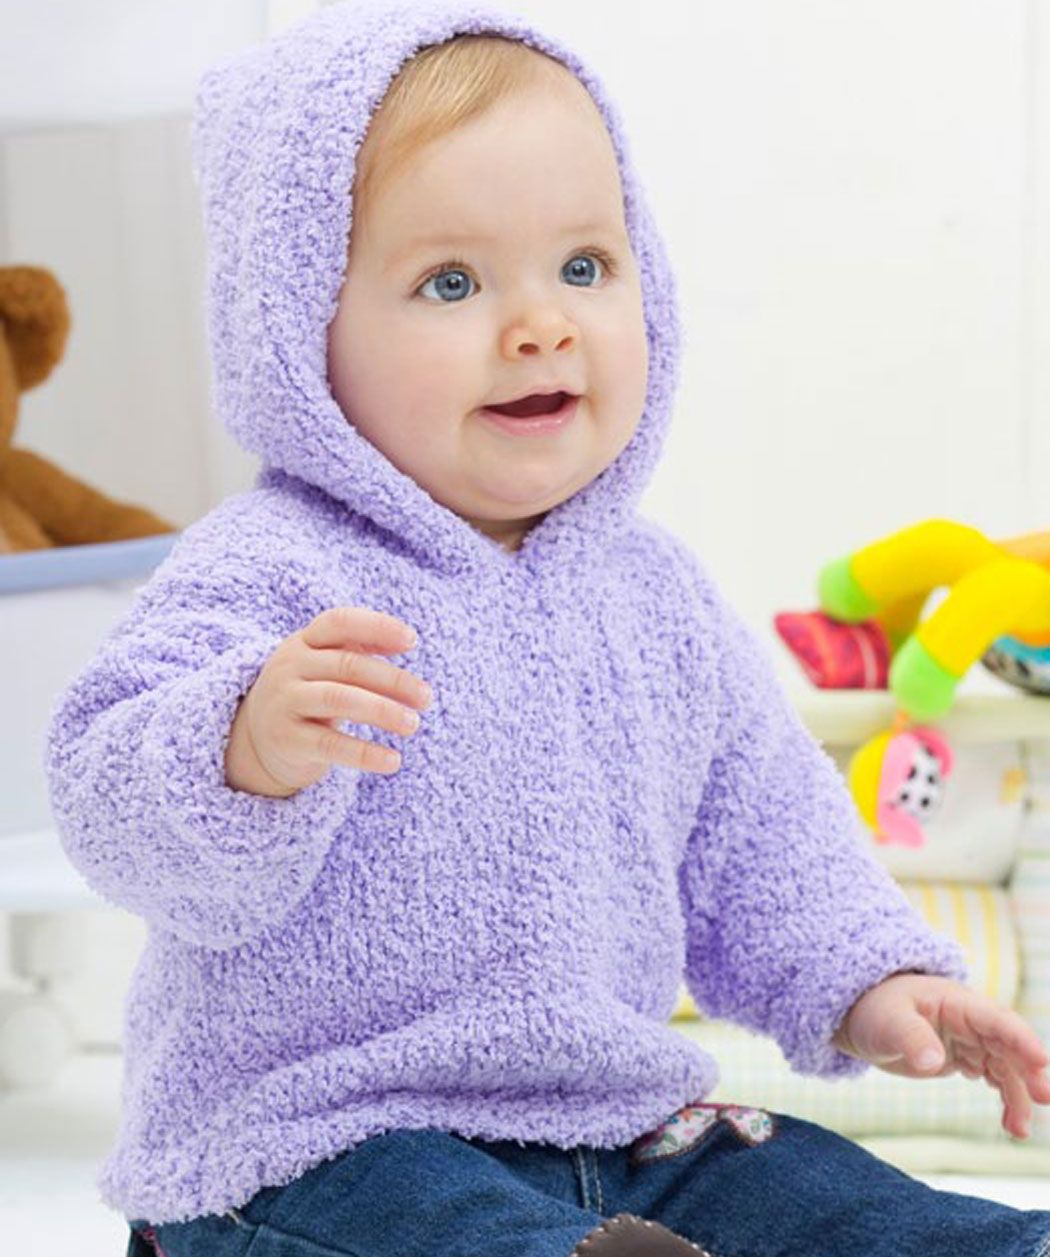 Toddler Hoodie Knitting Pattern : Easy Warm & Cozy Hoodie Knitting Pattern for Toddlers ...